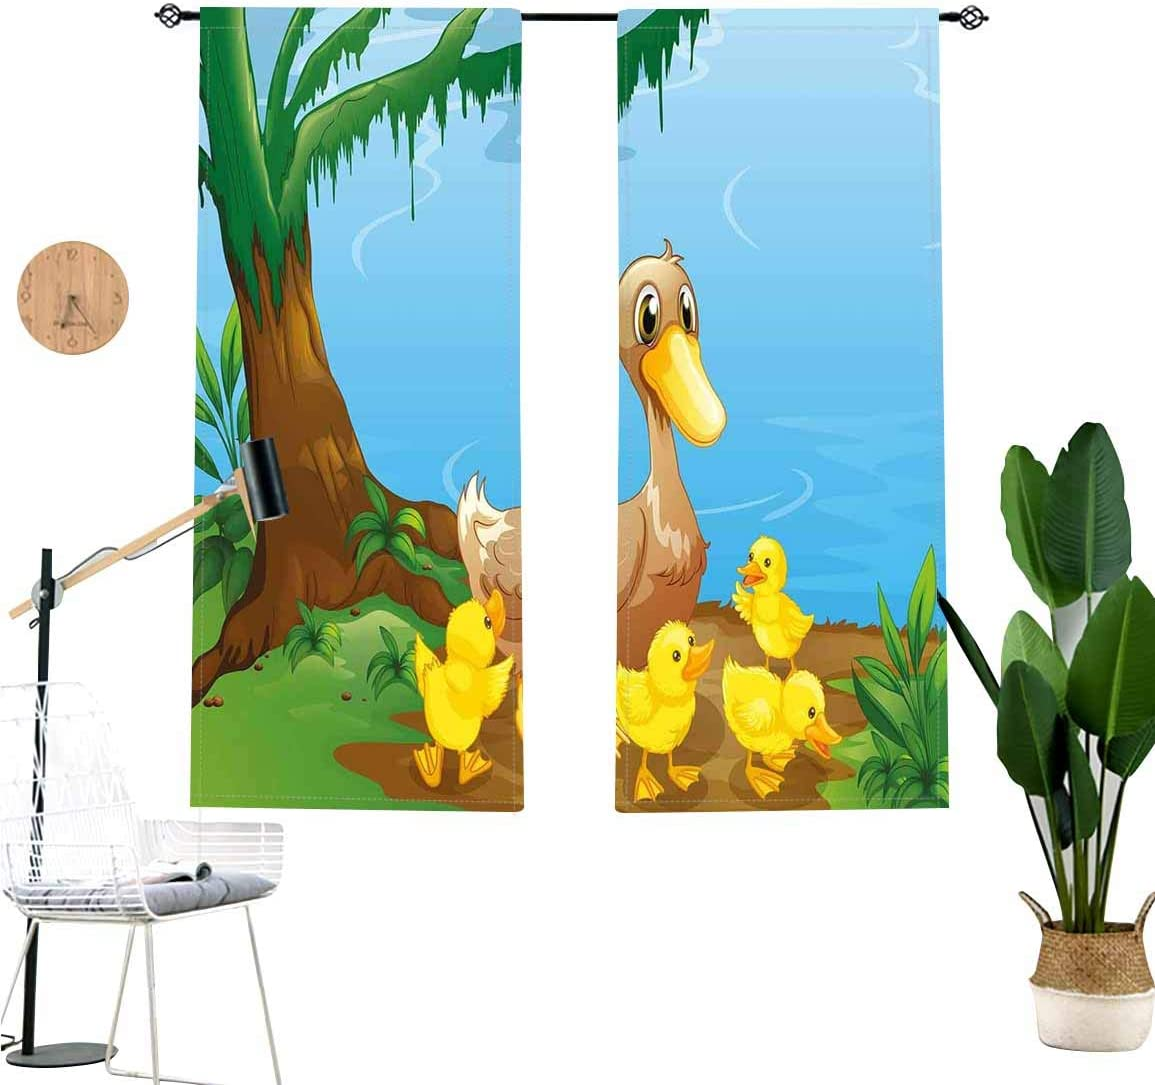 Kids Window Valance,Cute Duck and Her Ducklings at Riverbank Tree and Grass Cartoon Style Short Curtain for Kitchen Bedroom Decor with Rod Pocket,2 Panel Set,W29 x L24 Each Panel